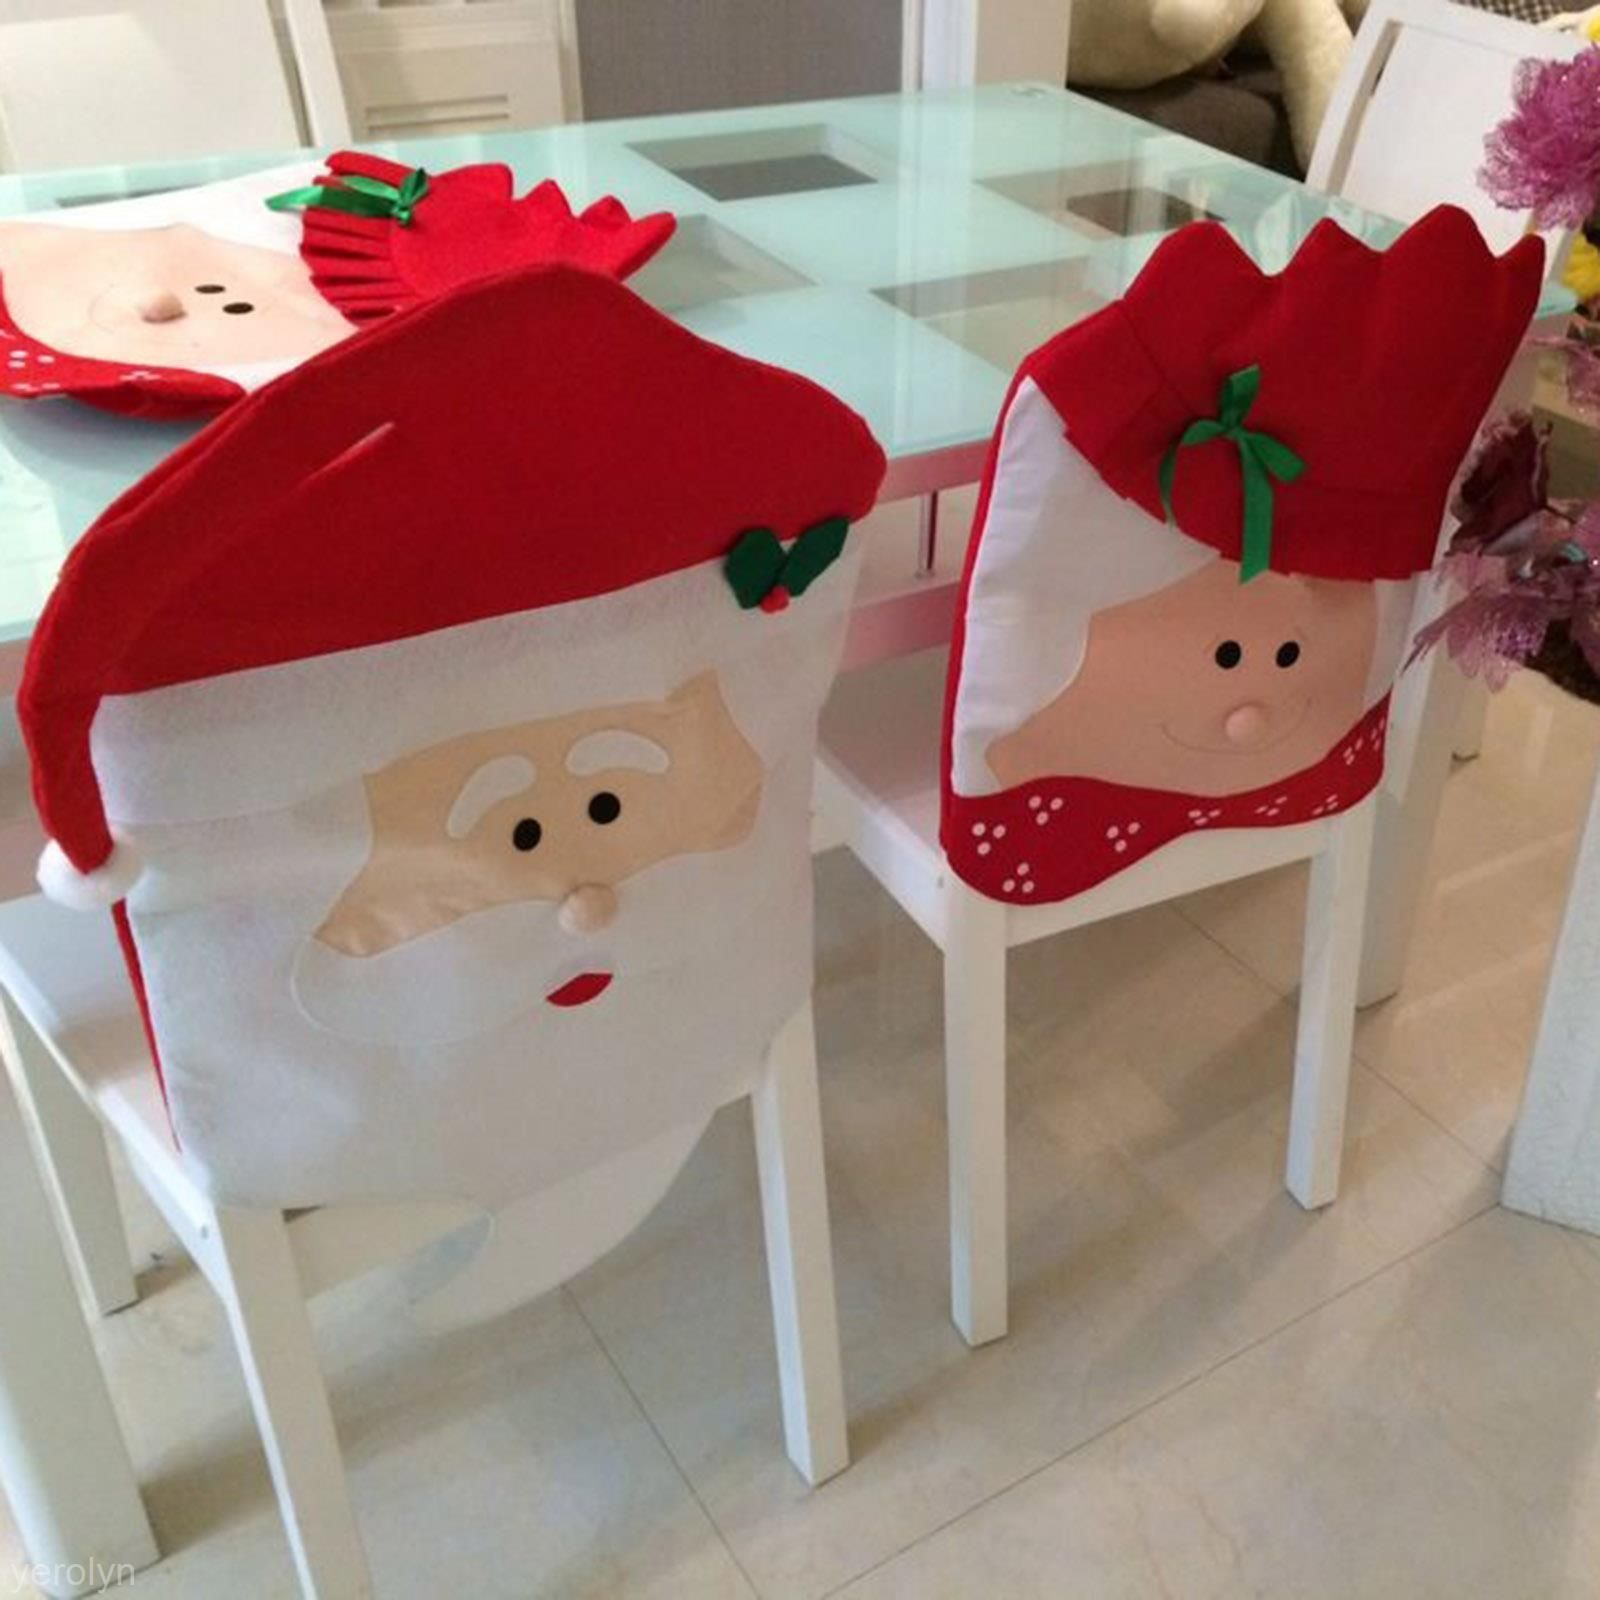 Christmas Chair Covers Ebay Hanging Leaf 6 17 Aud Adorable Santa Claus Funny Decor Soft Dining Room Seat Cover Home Garden